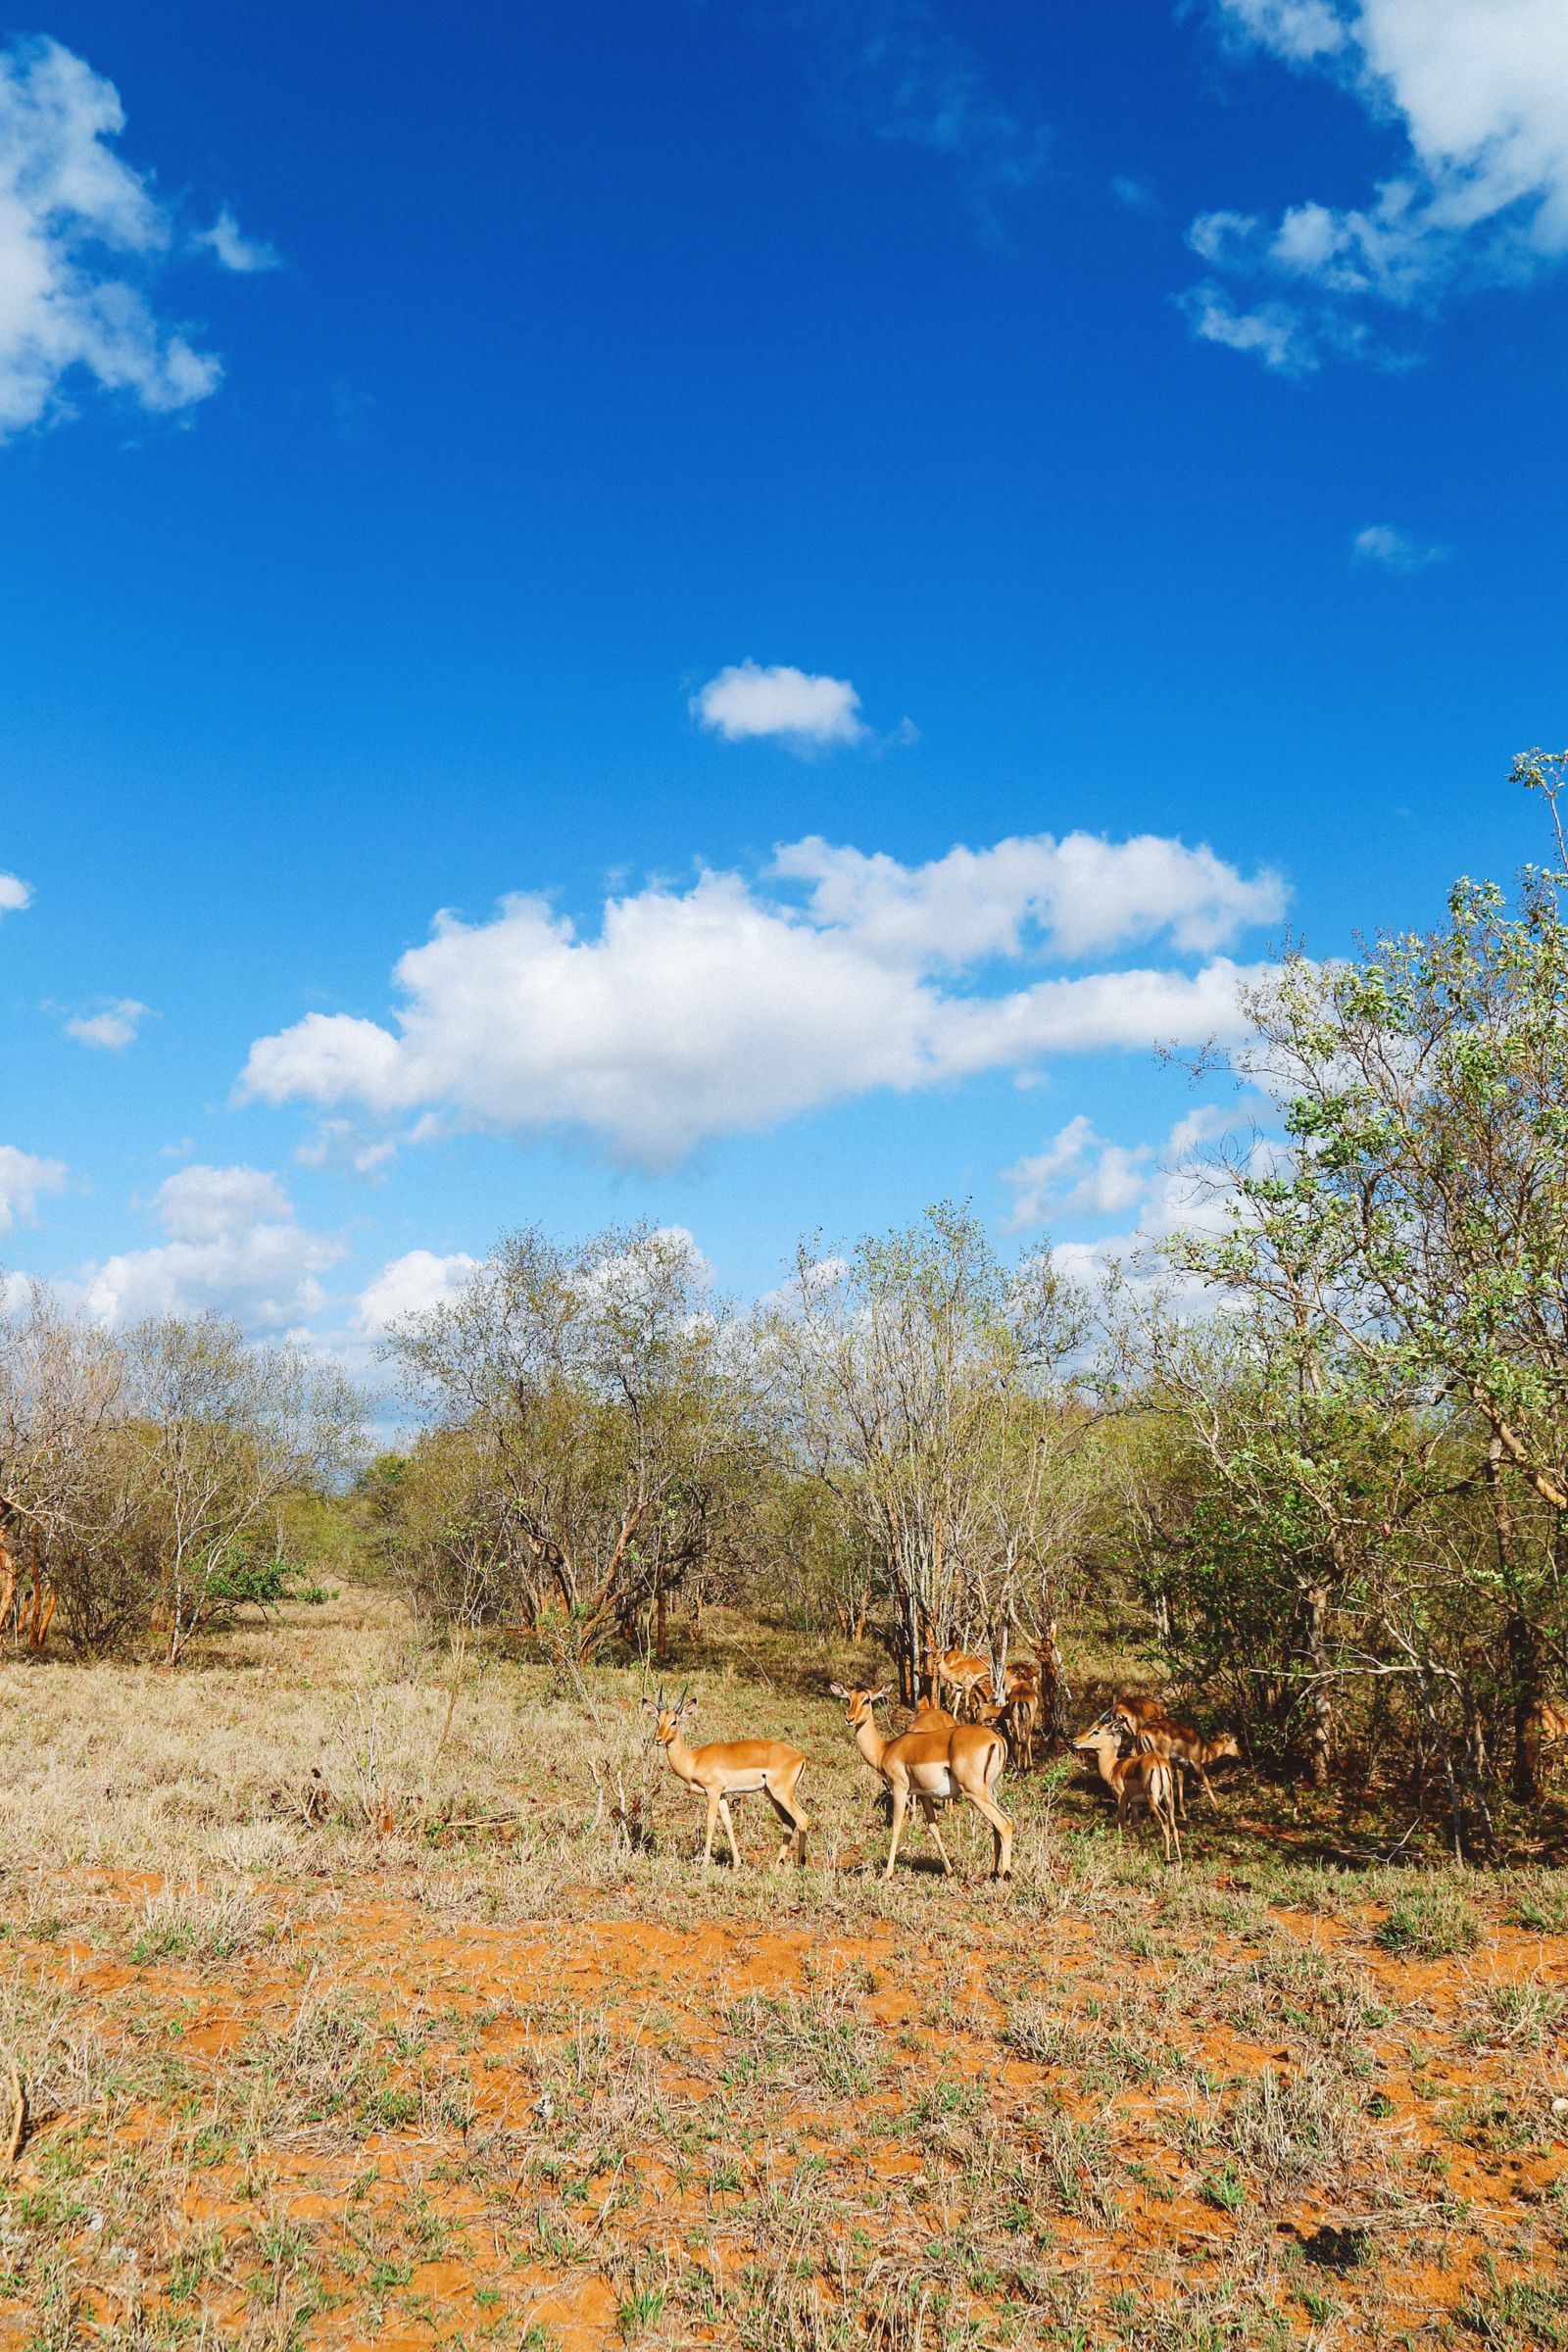 Sunrise Till Sunset - A 24 Hour South African Safari Diary (16)